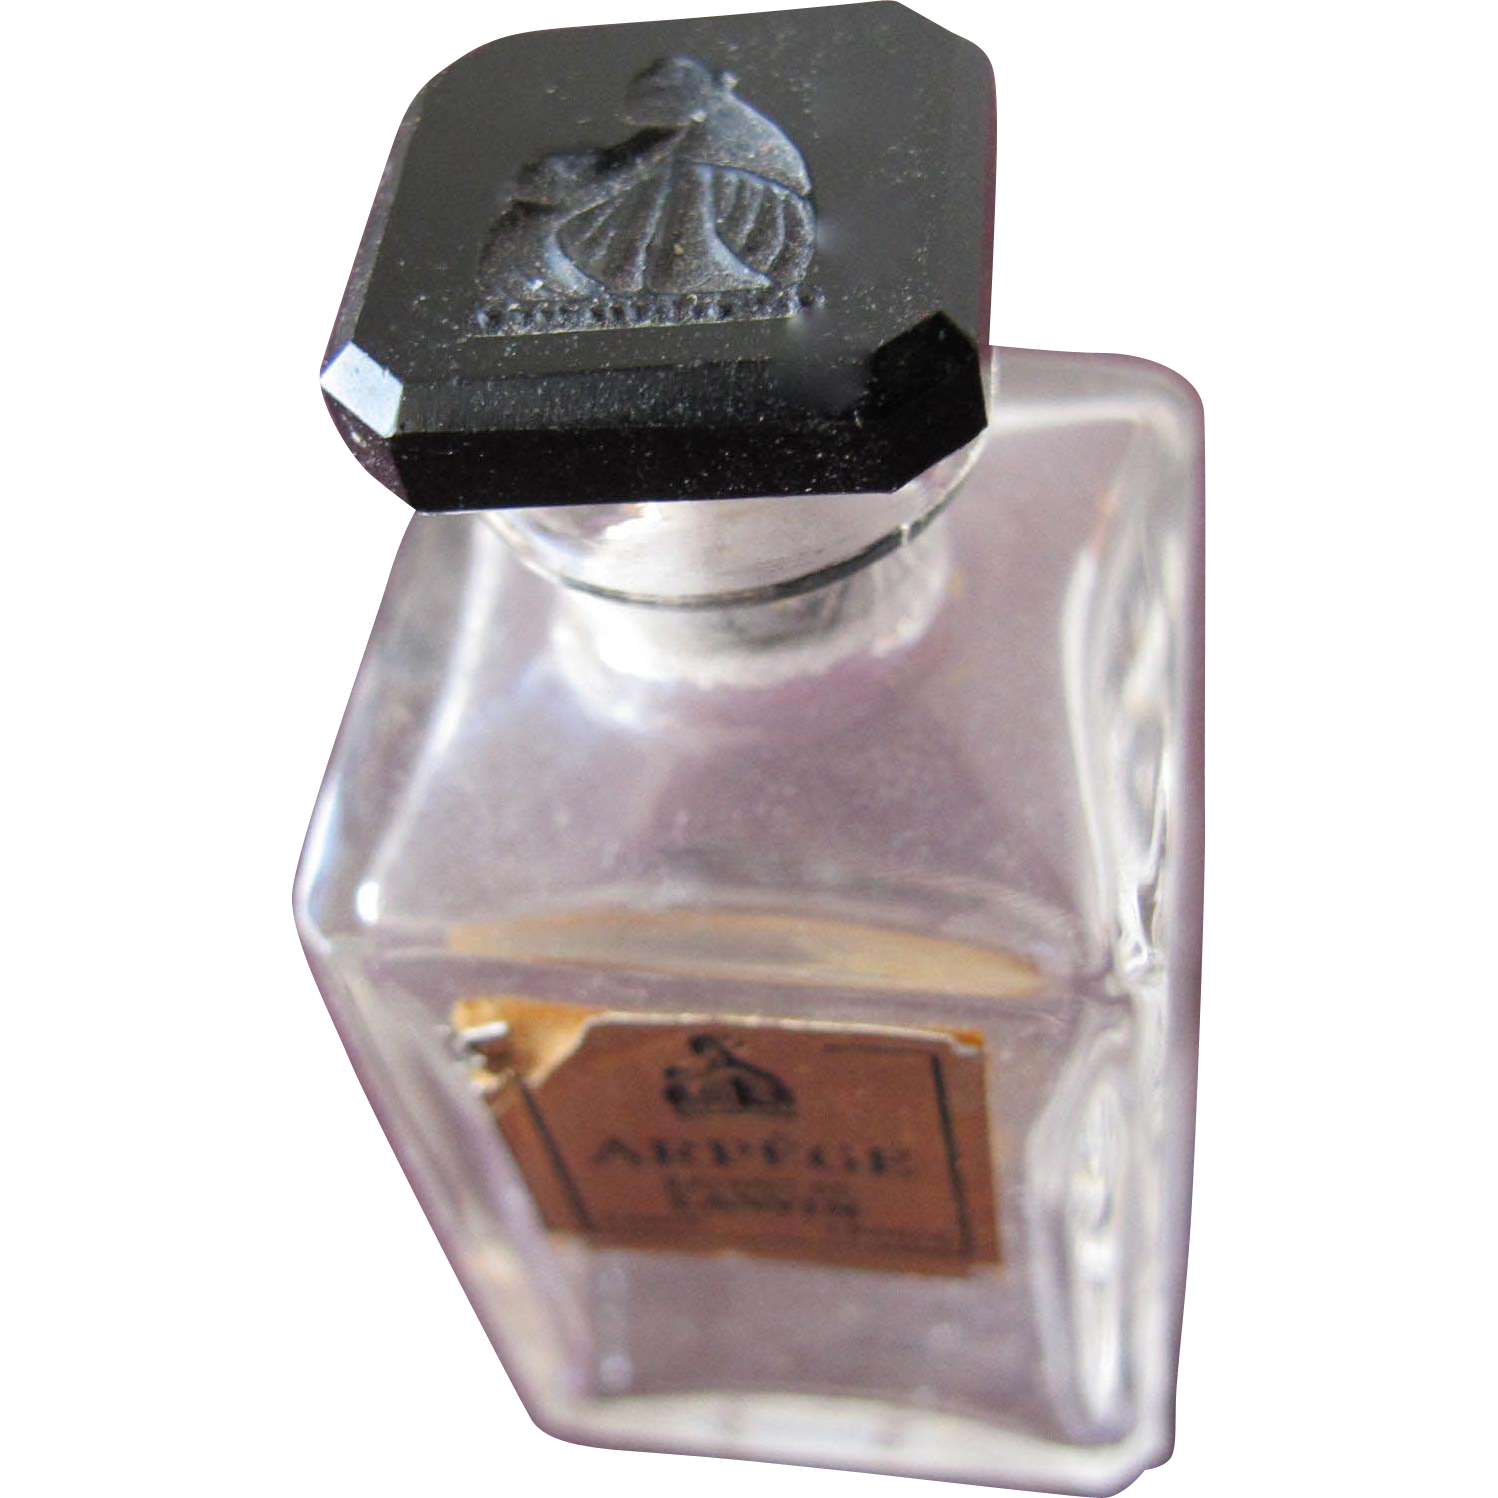 Commercial Perfume Bottle Lanvin Arpege 1927